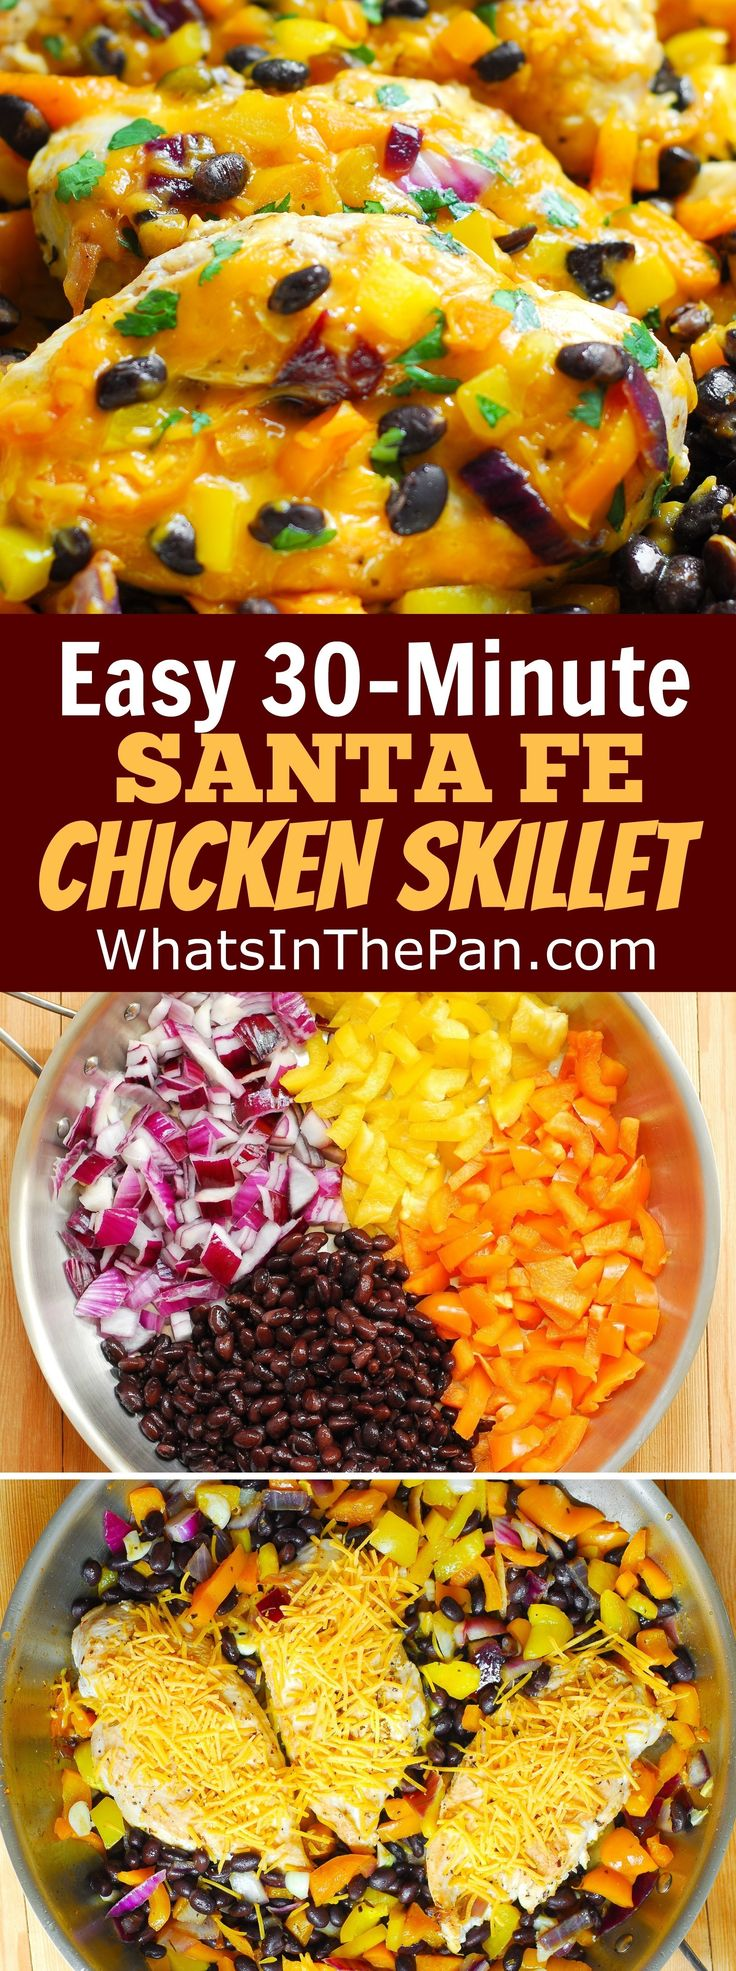 Easy, 30-Minute Santa Fe Chicken Skillet: chicken breasts with bell peppers, black beans, and Cheddar Cheese. weeknight dinner recipe. (Cheese Tortellini Chicken)